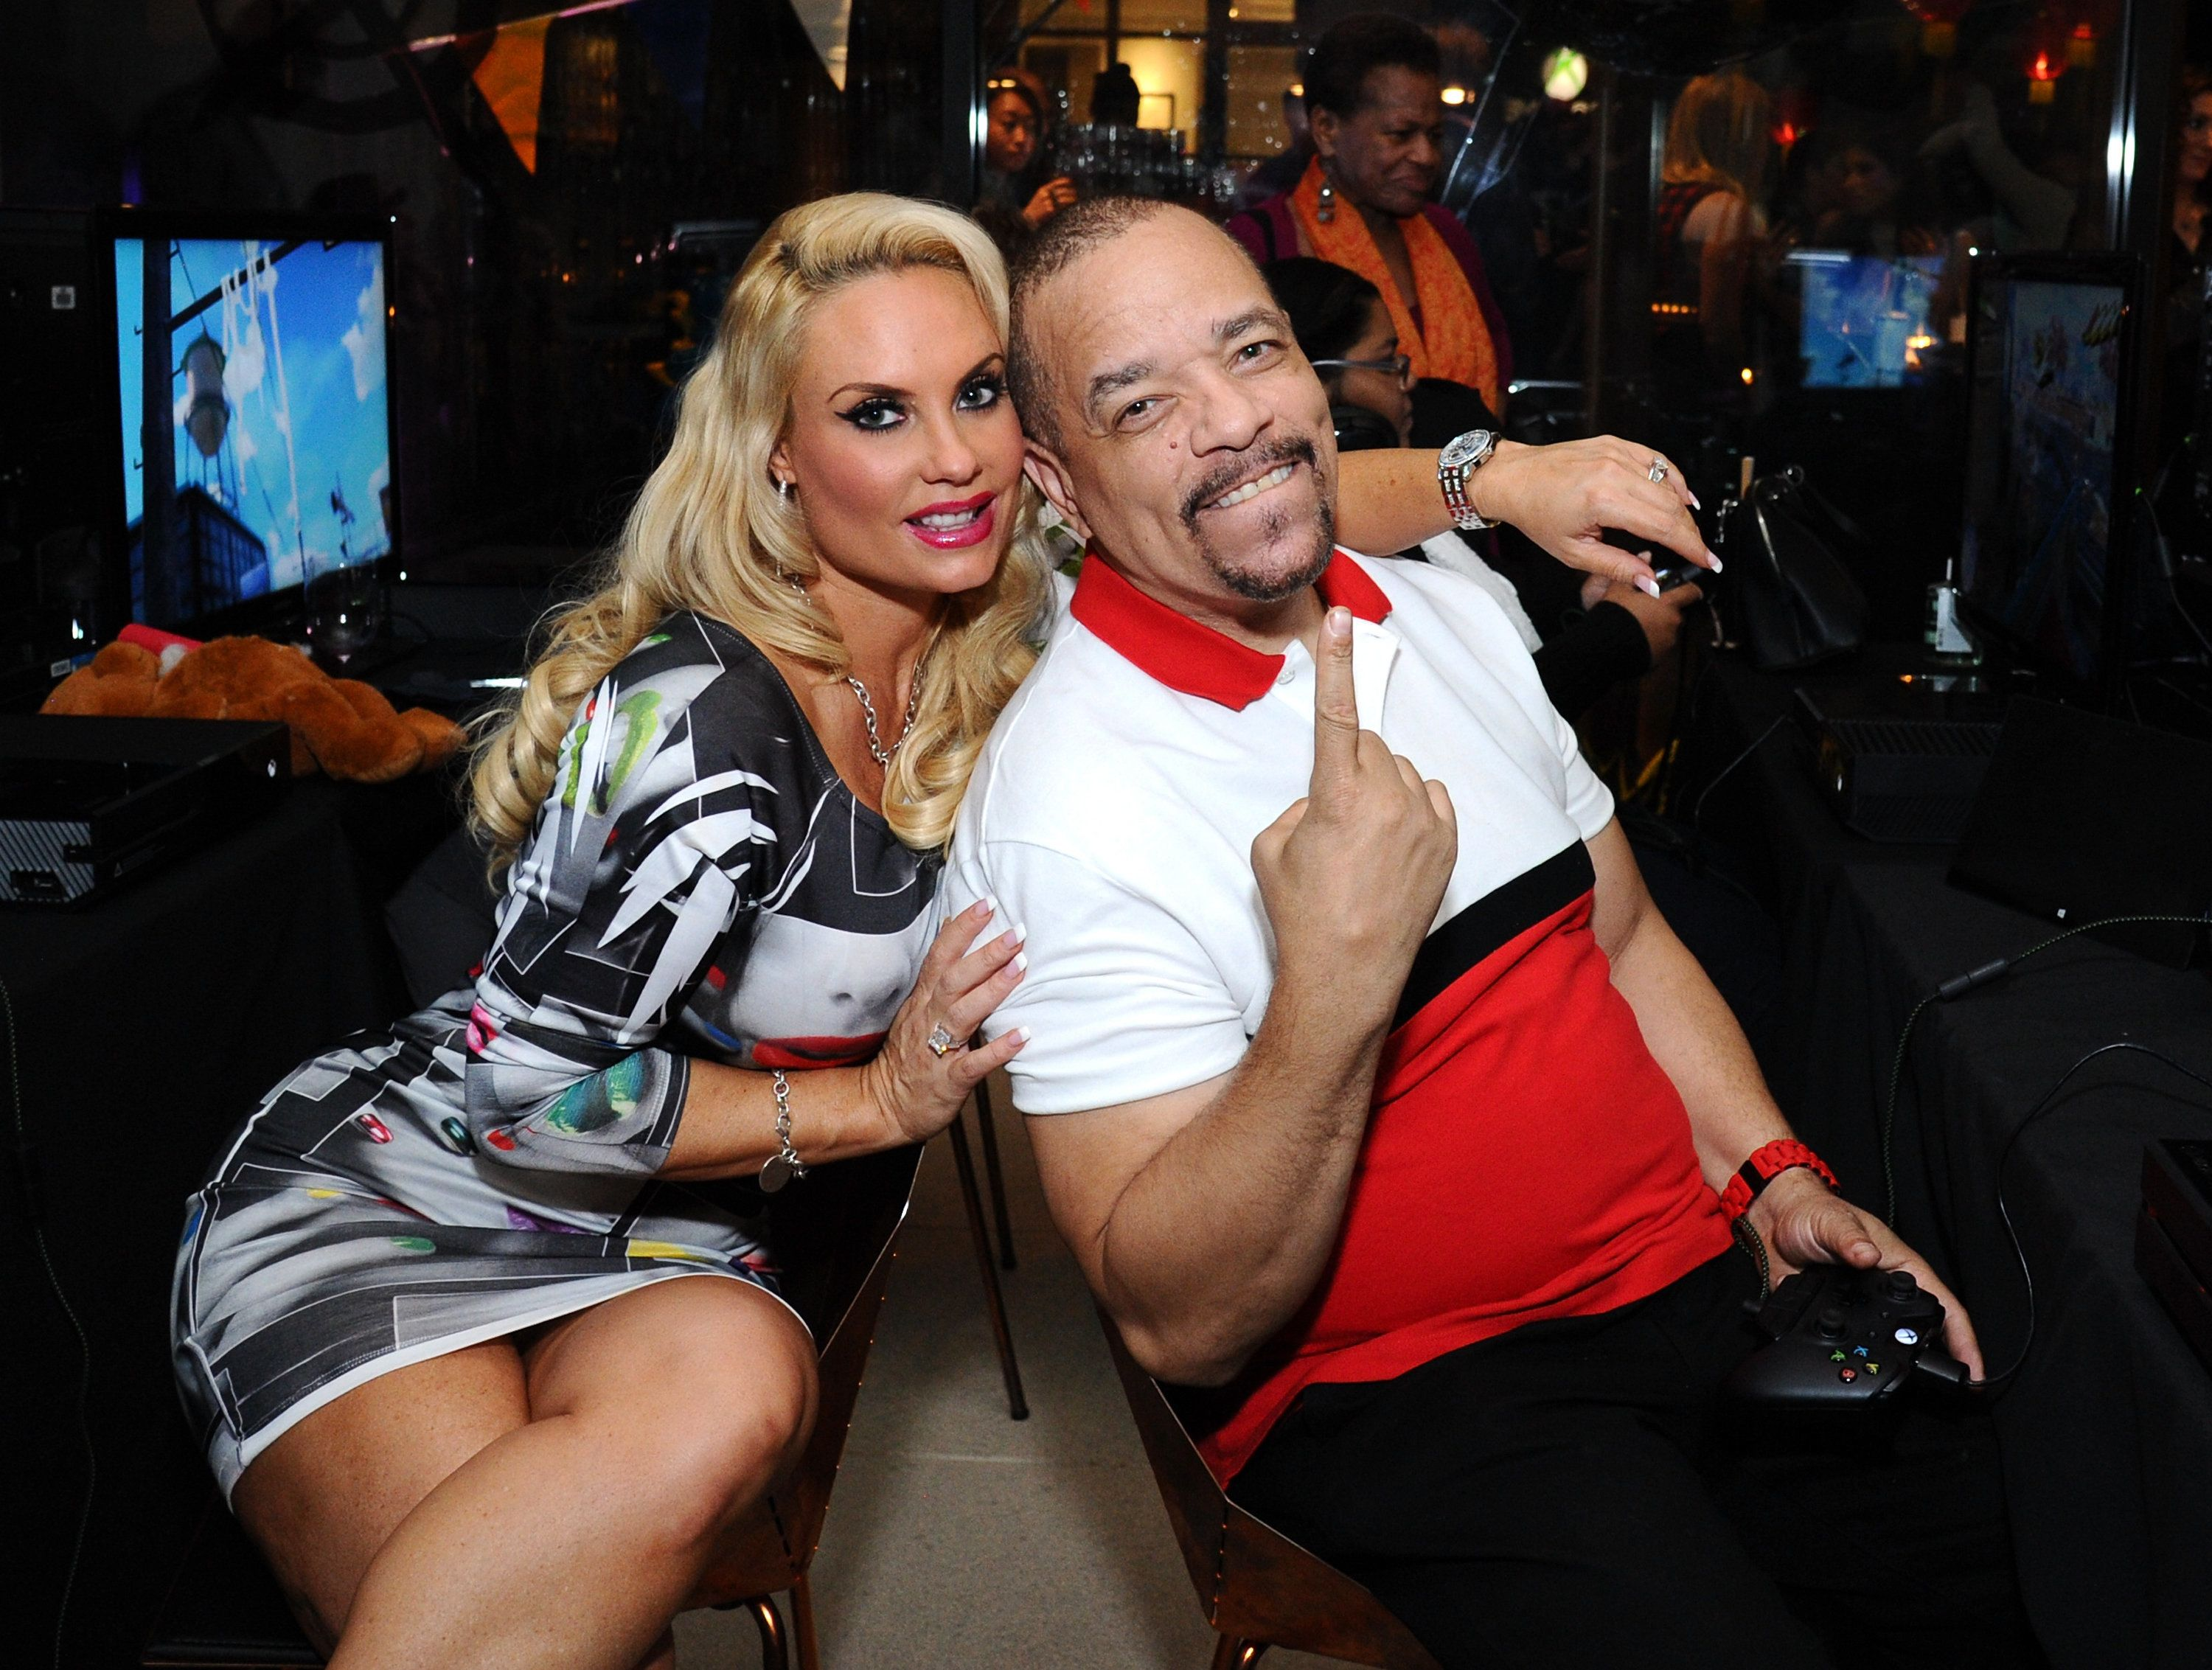 NEW YORK, NY - OCTOBER 27:  Ice-T and Coco celebrate the launch of Sunset Overdrive at the XboxOne Loft on October 27, 2014 in New York City.  (Photo by Ilya S. Savenok/Getty Images for Microsoft)